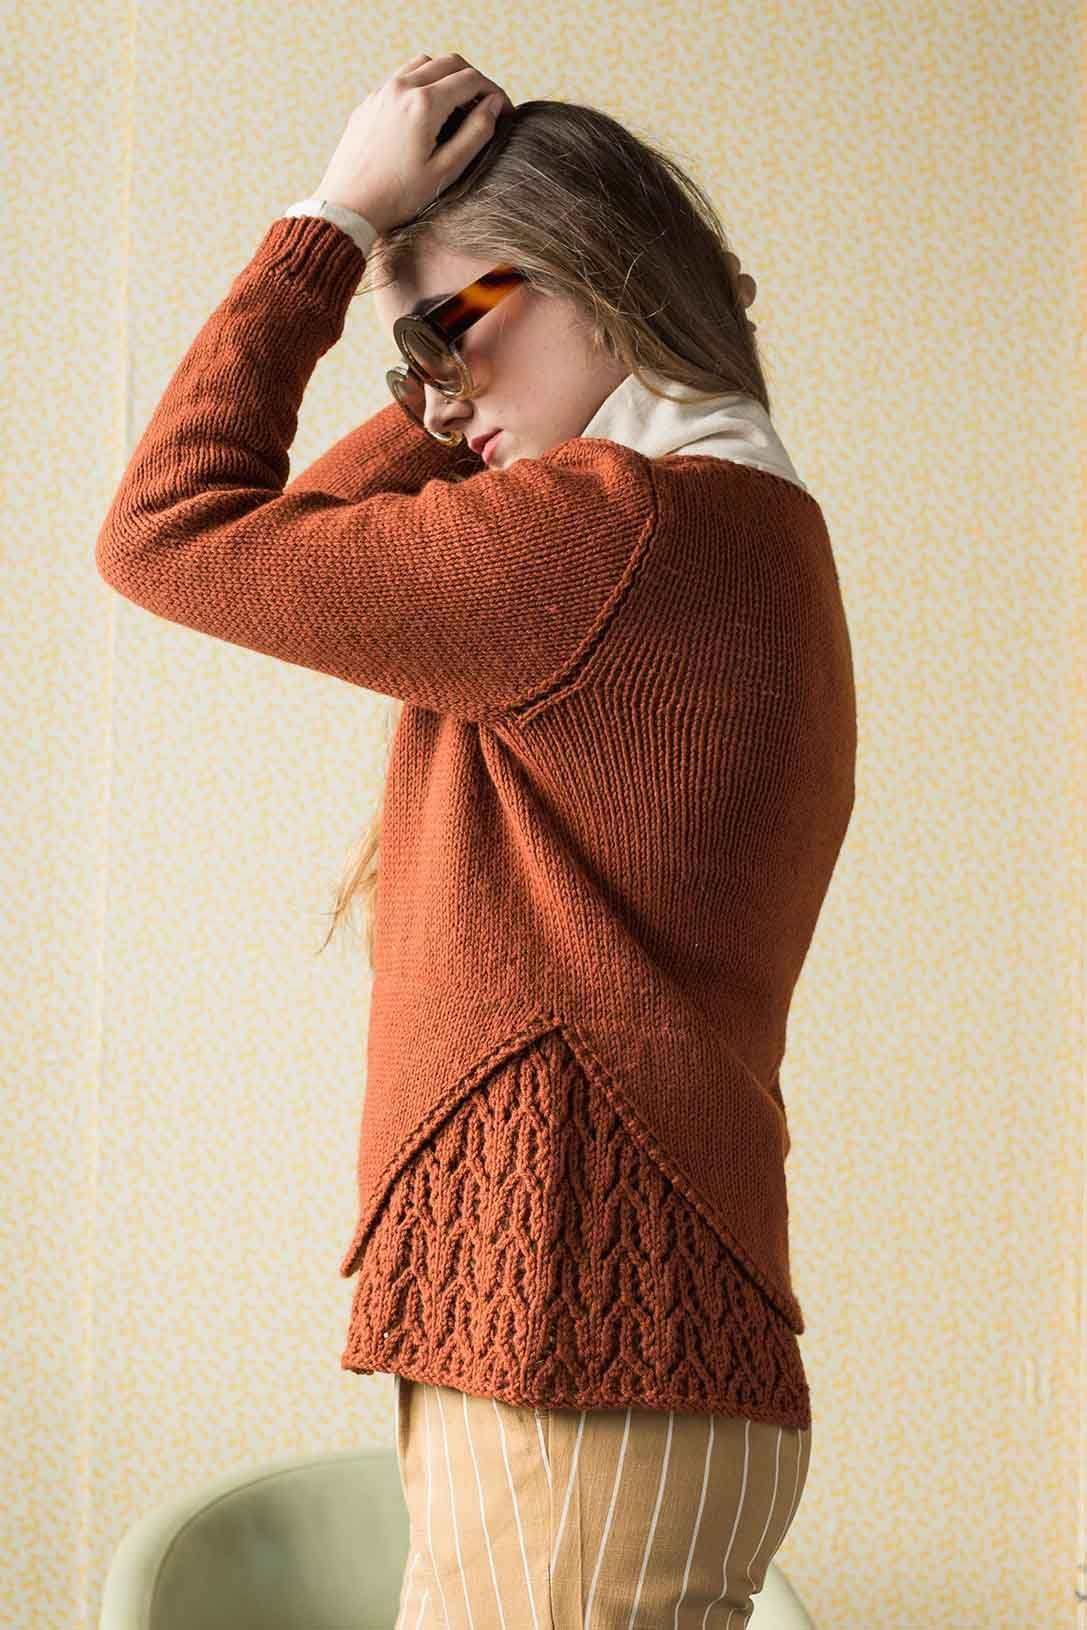 b0b43ed82de378 The Beatrice Sweater by Lana Jois begins with the lace inset panel that is  knit in when the body is joined in the round